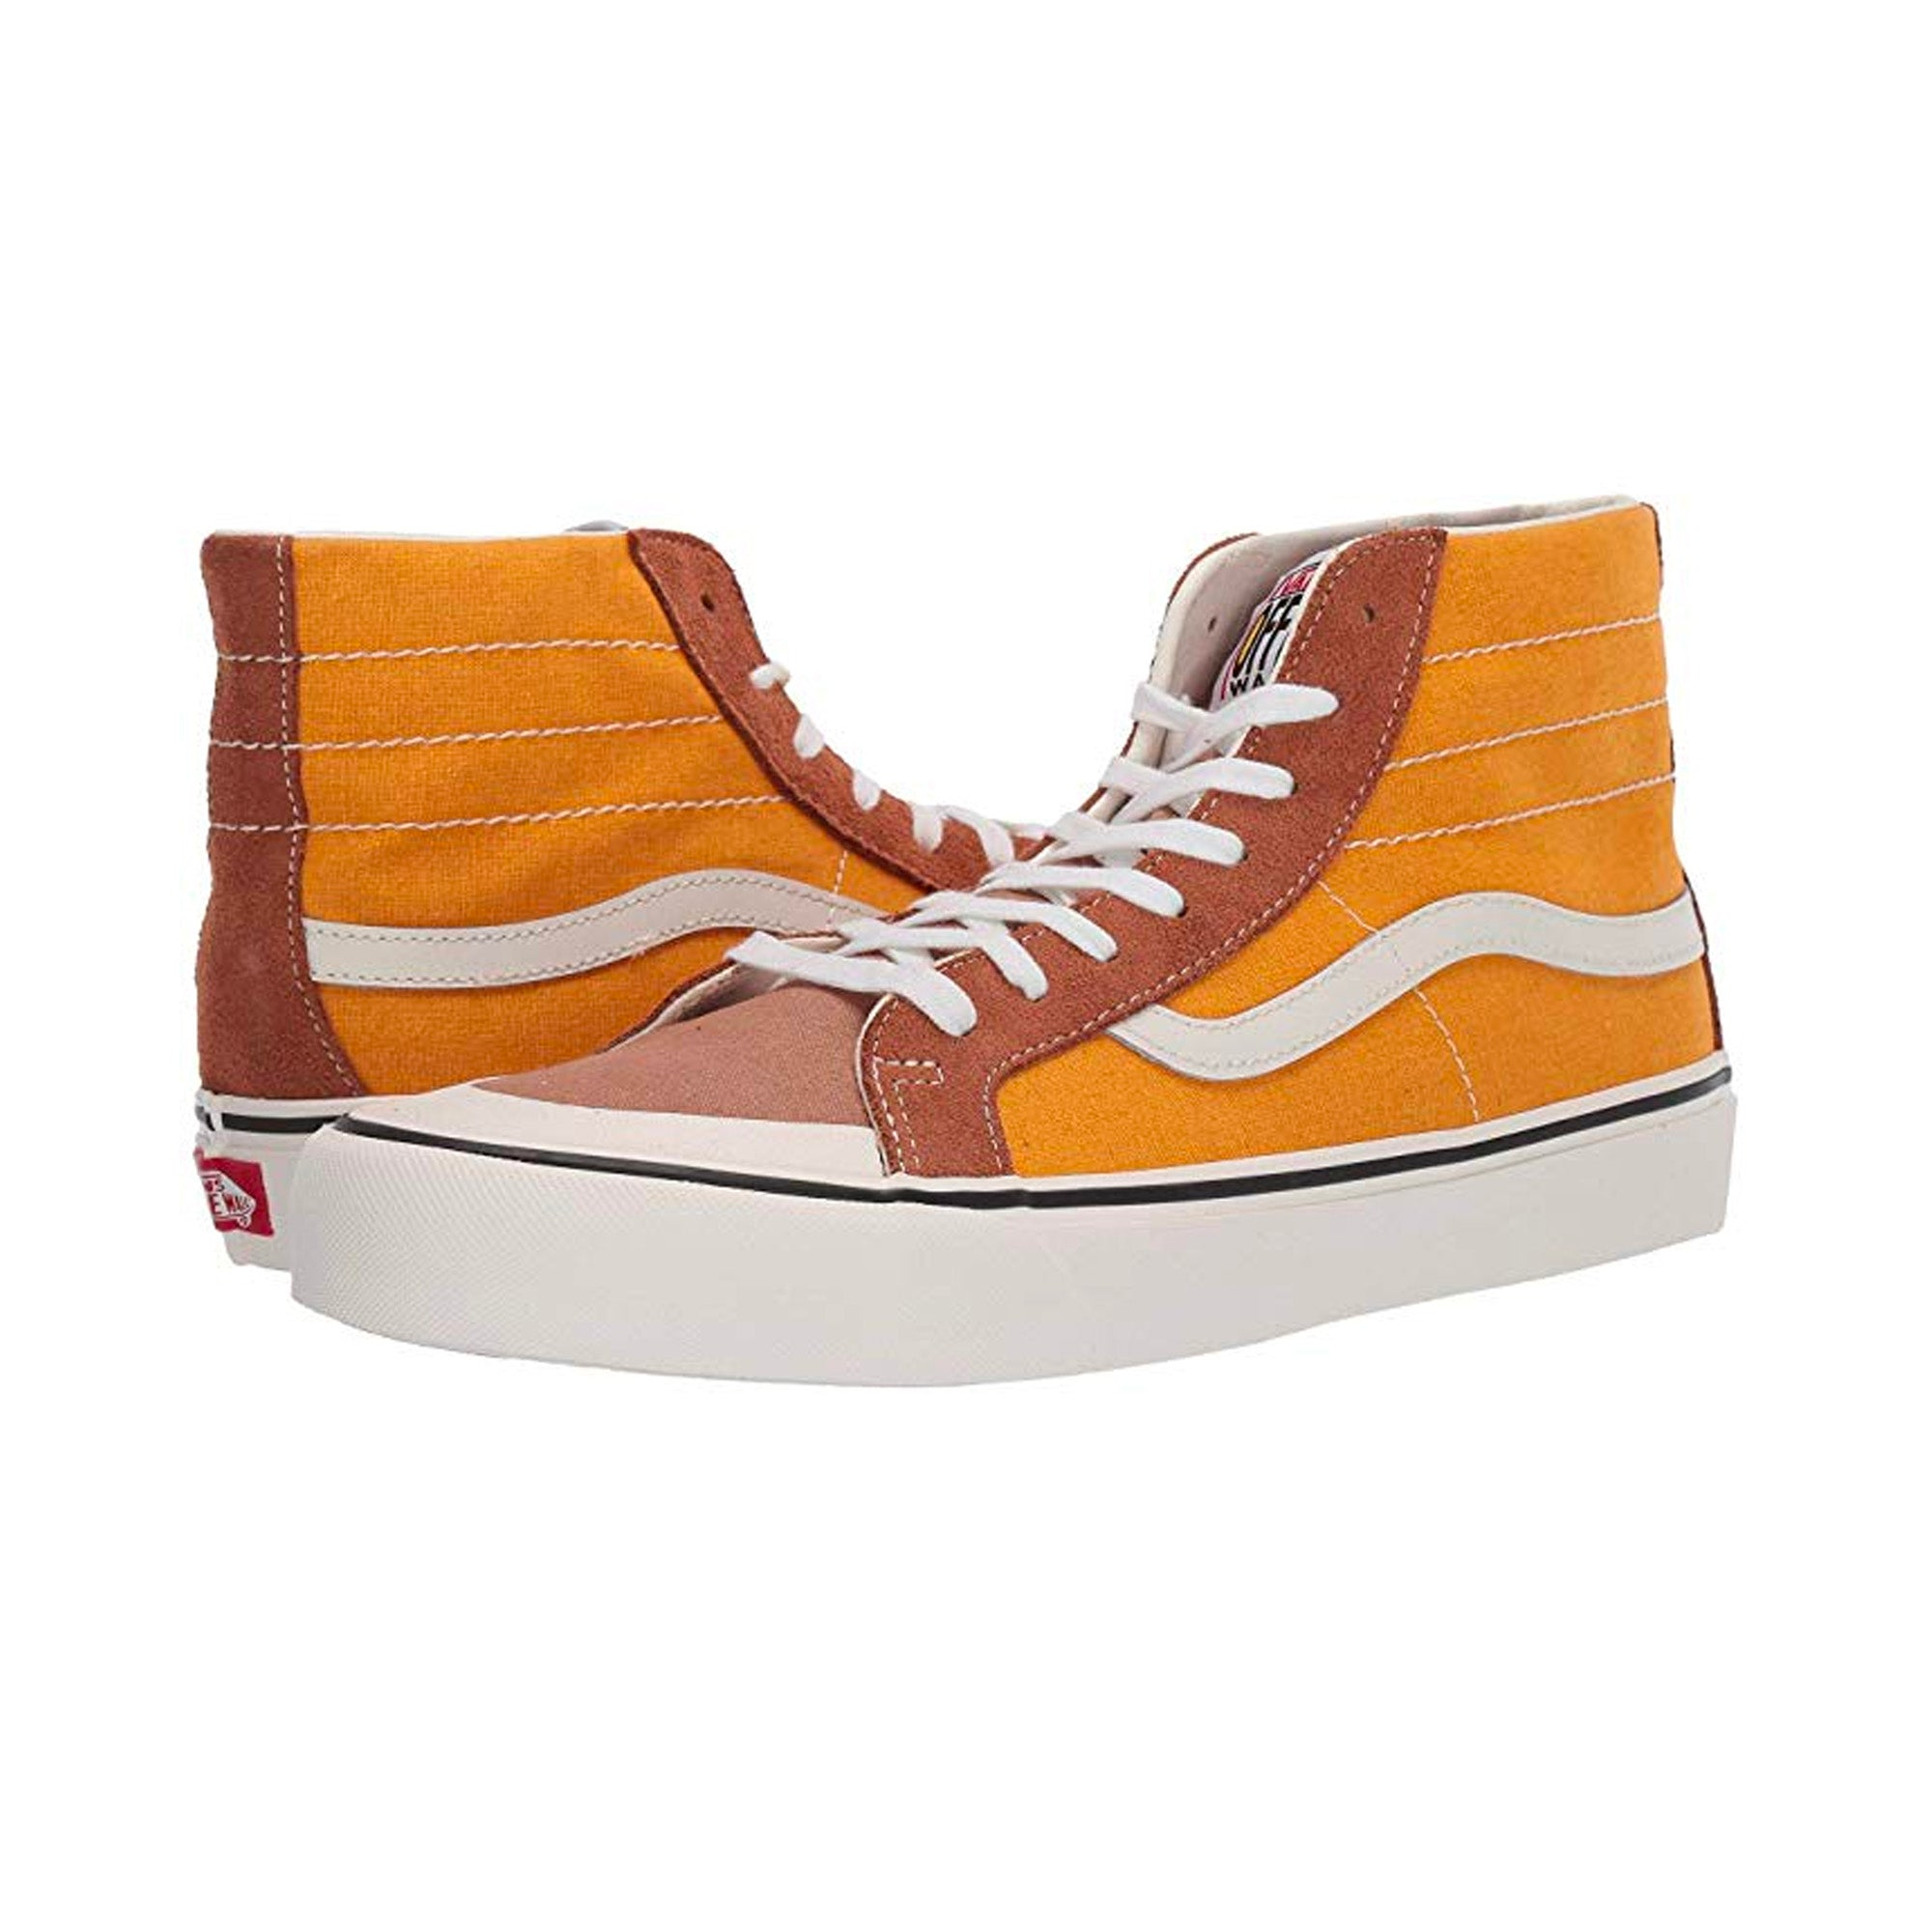 Vans Sk8-Hi 138 Decon Men's Shoes